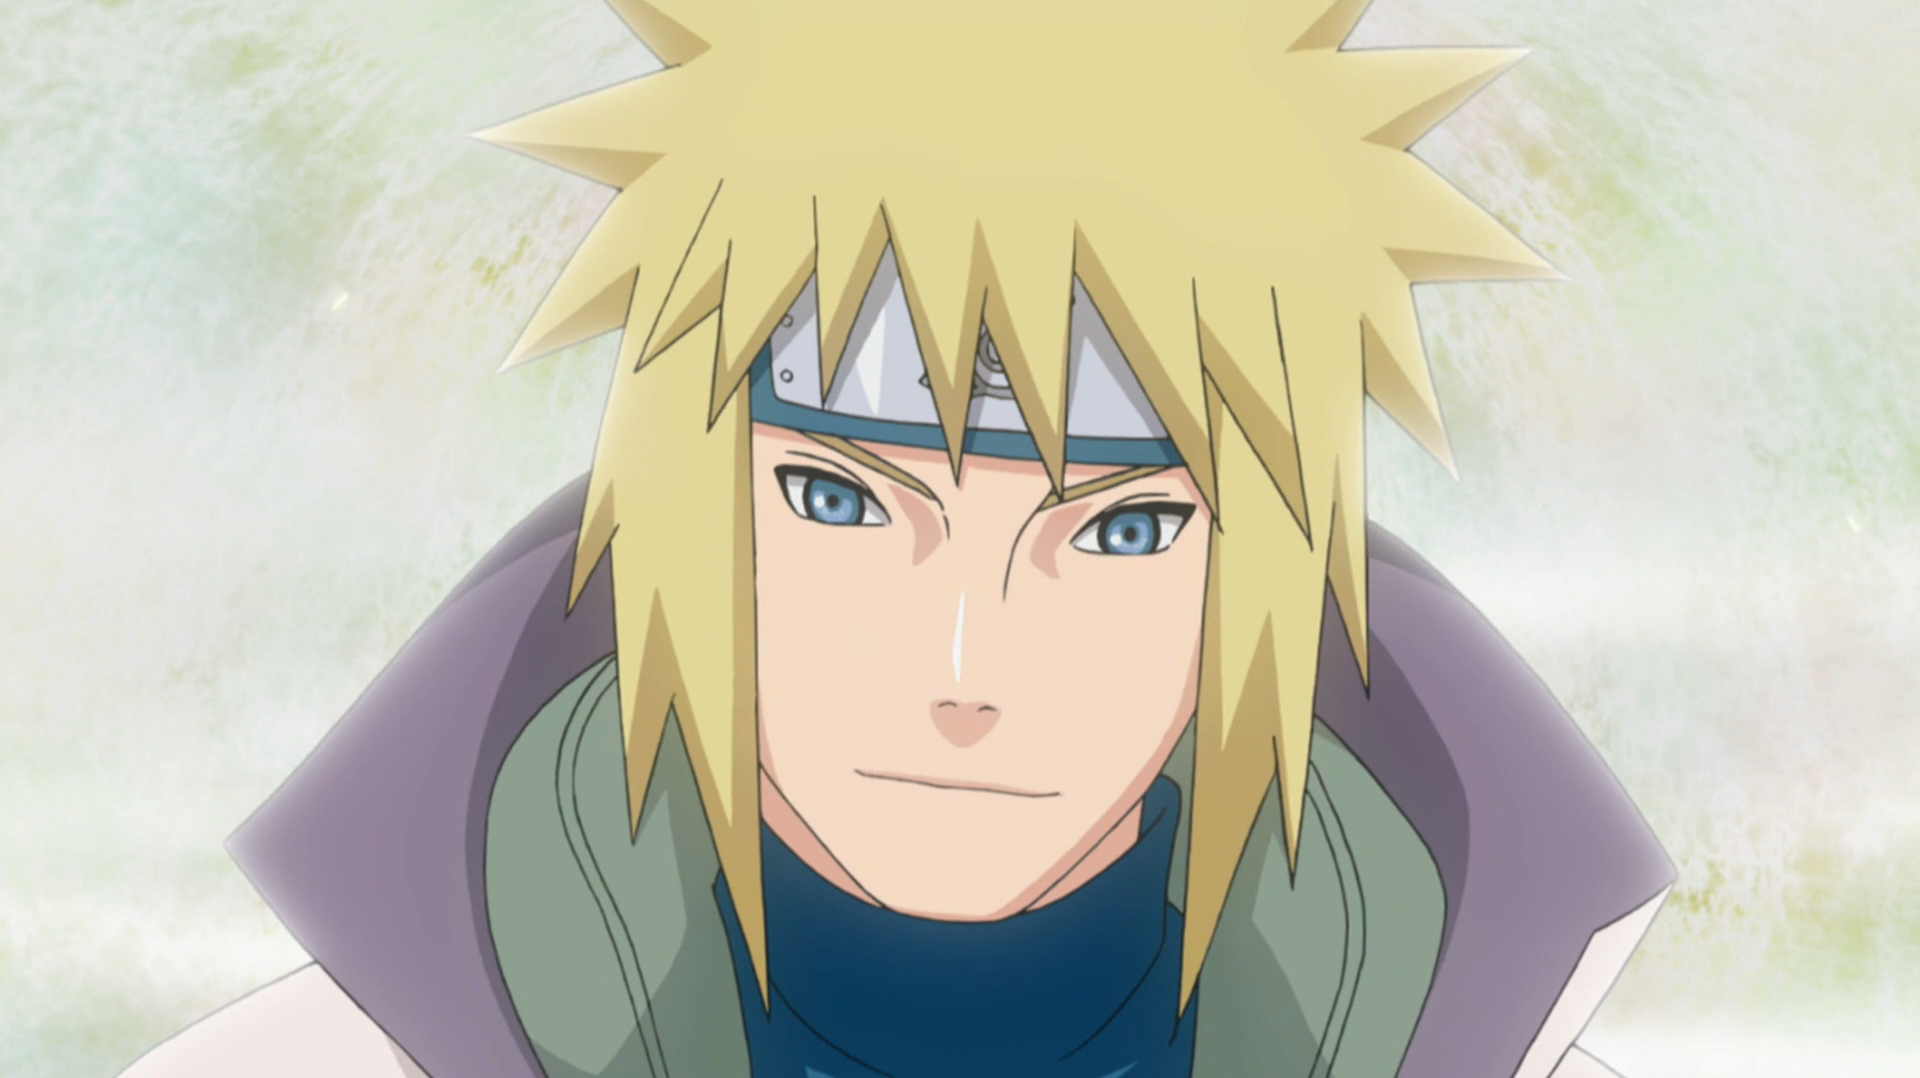 http://images.wikia.com/naruto/images/1/1f/Minato_Namikaze.PNG